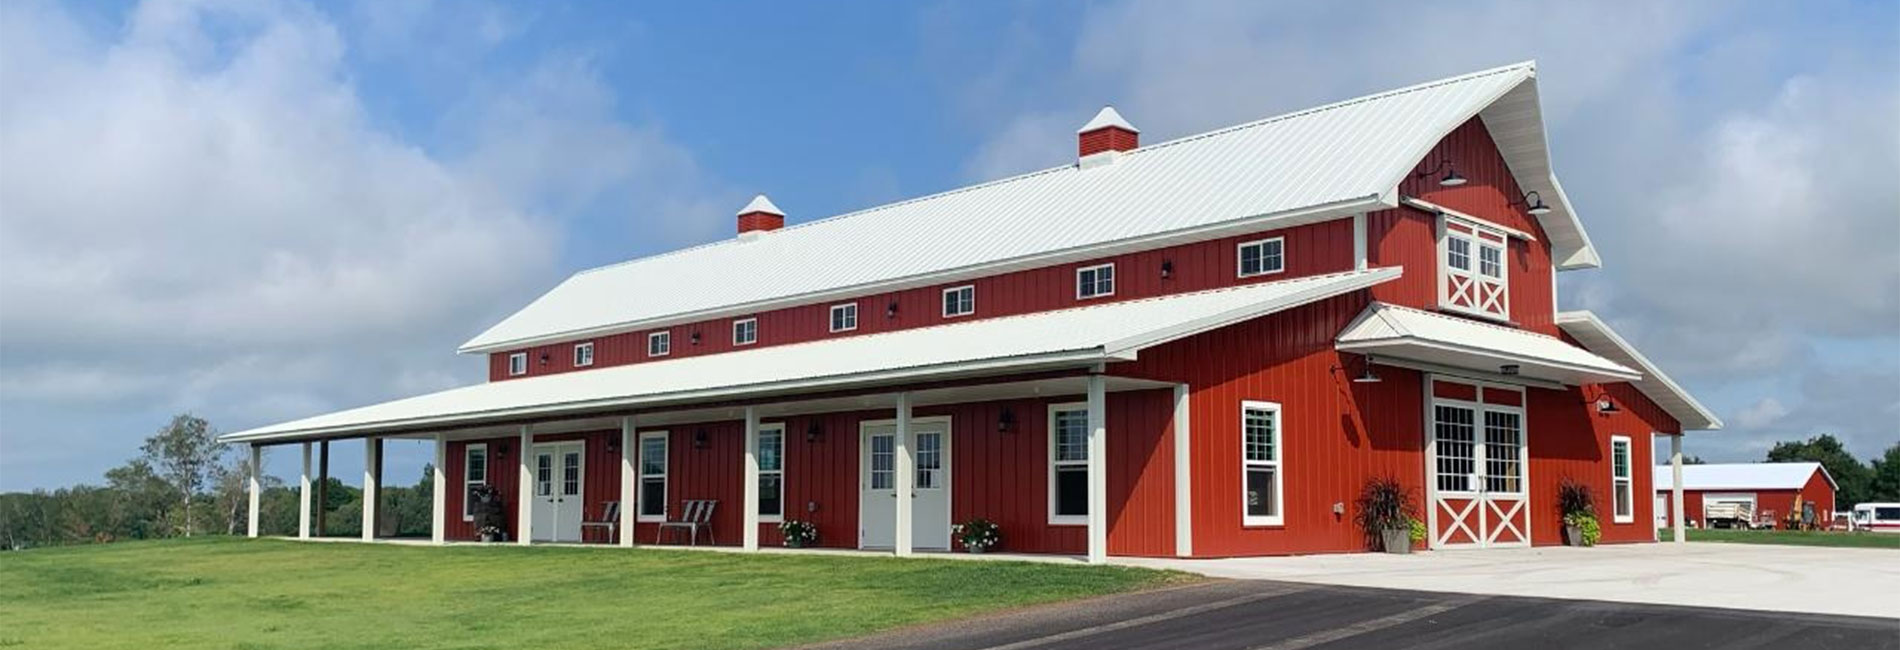 Commercial Event Building Construction, Pole Barn and Post Frame Building Services